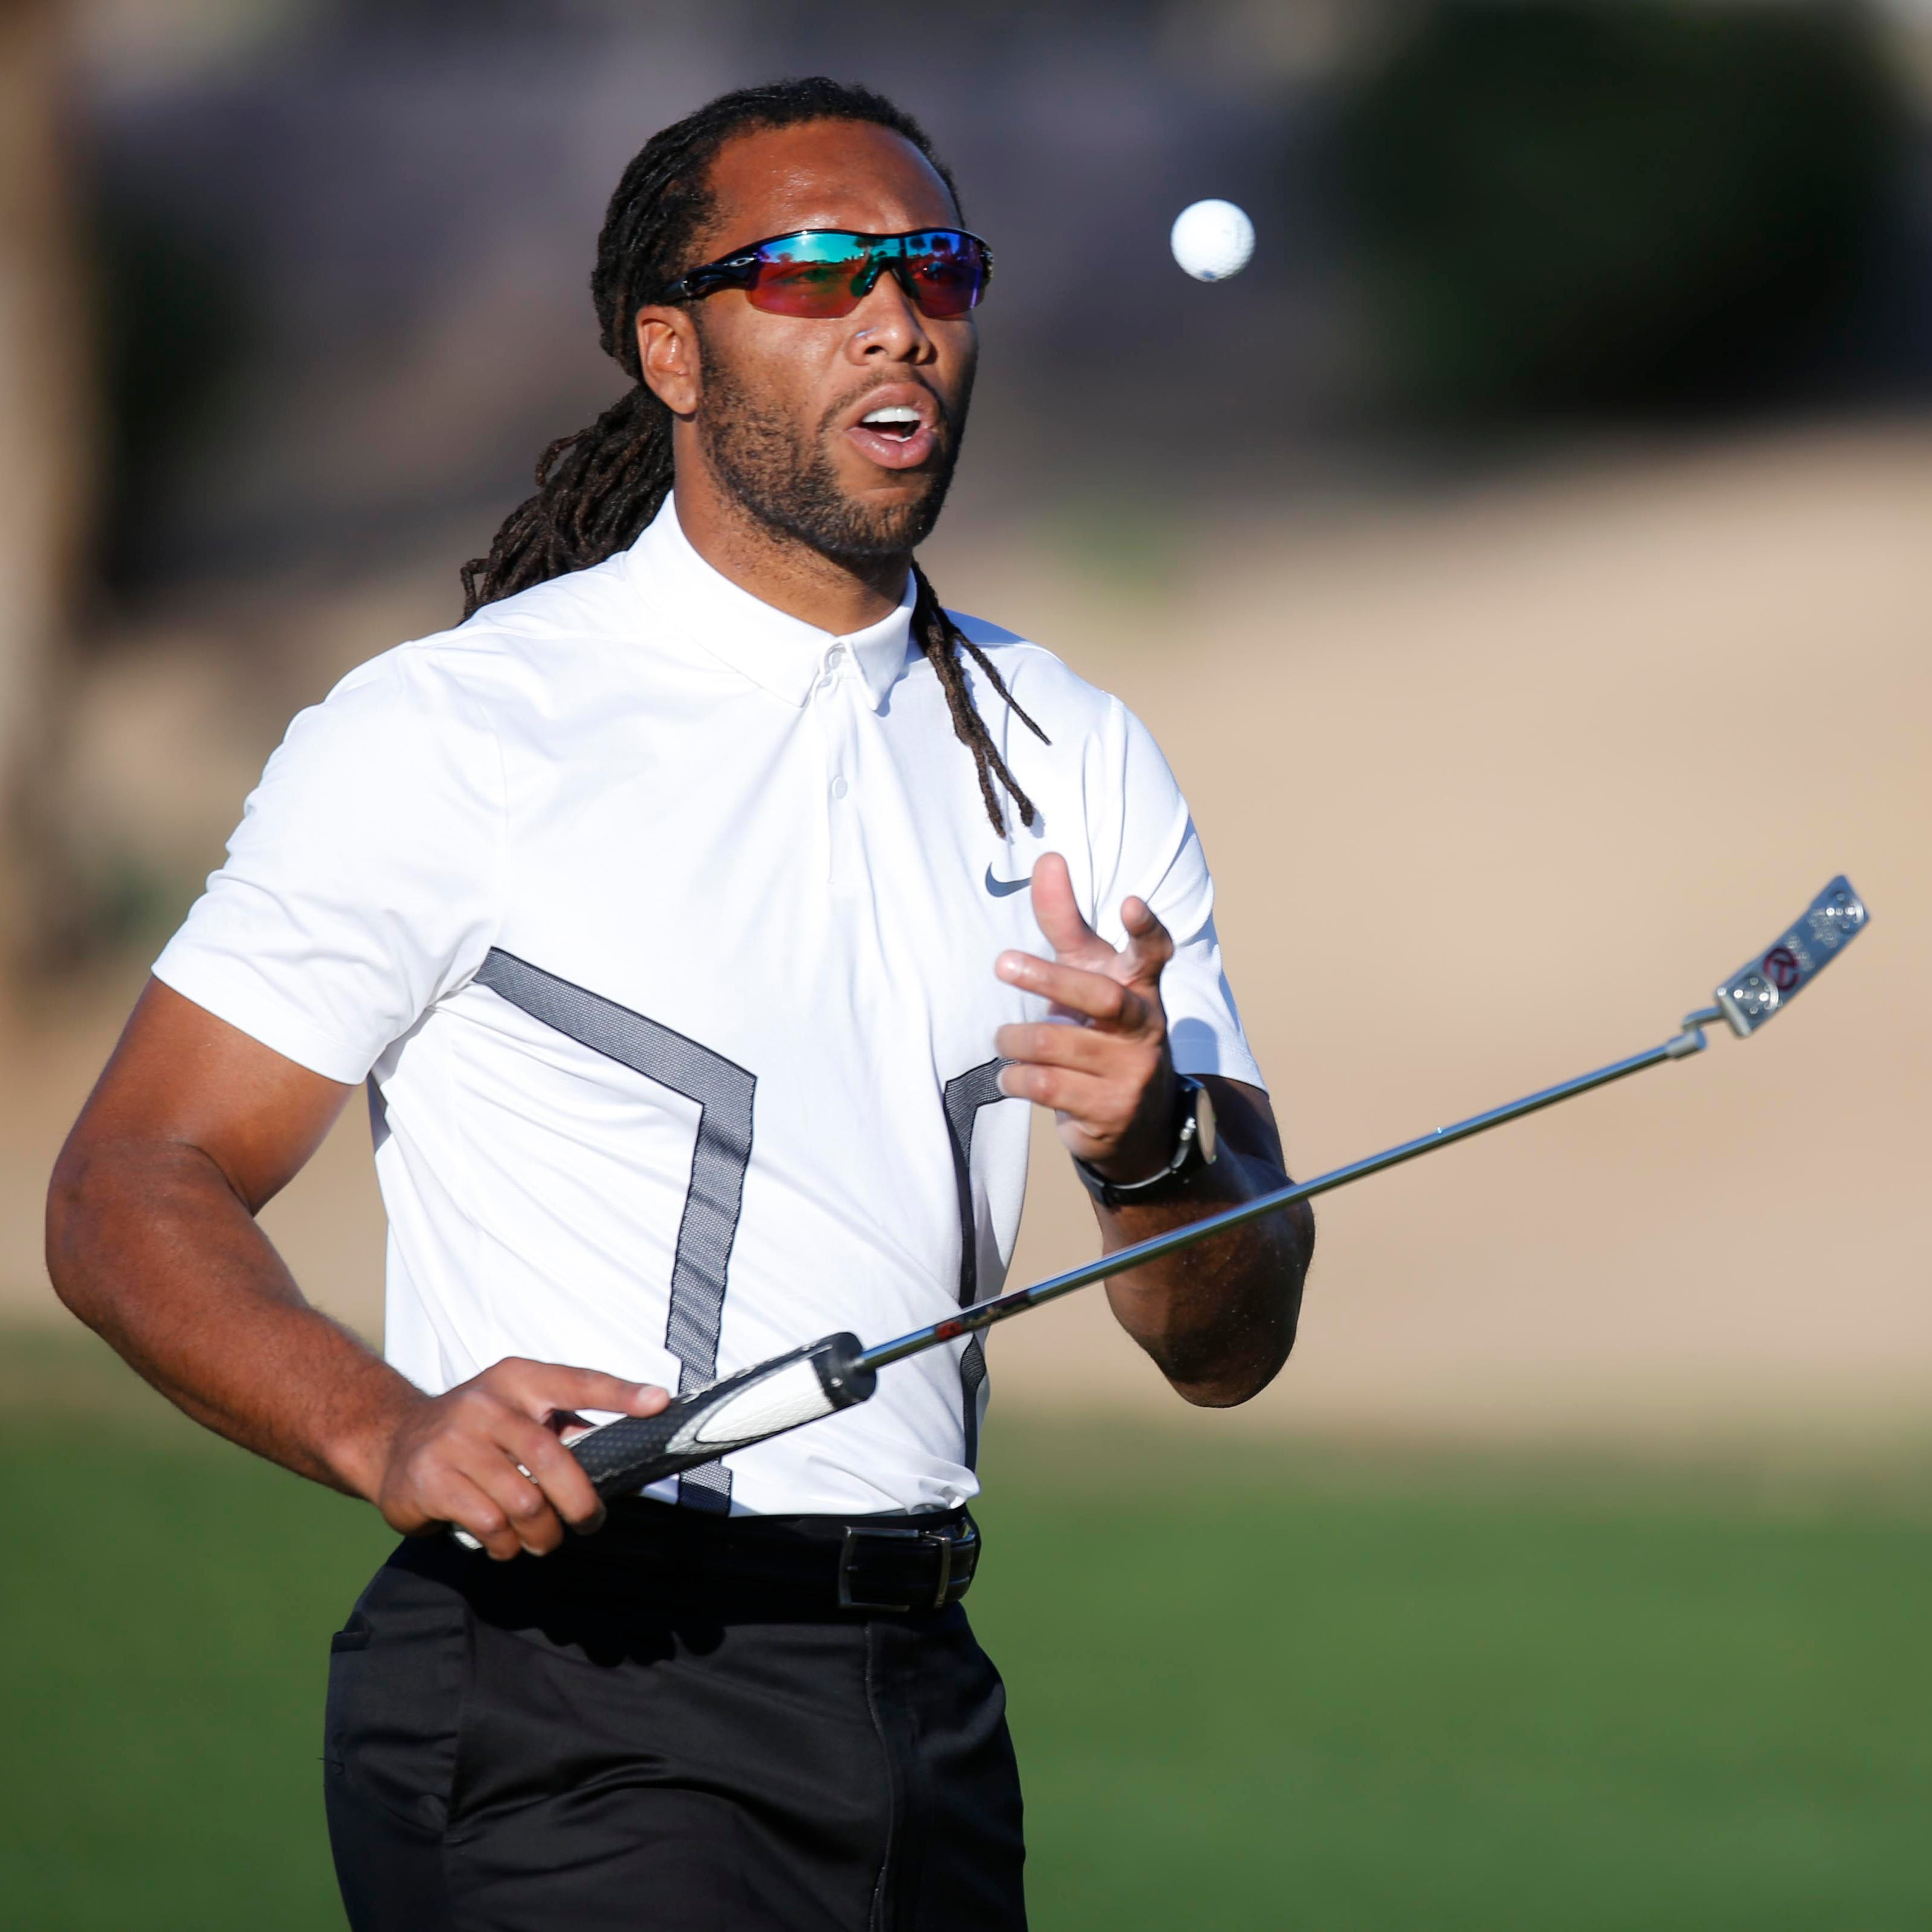 Cardinals' Larry Fitzgerald makes hole in one playing with Barack Obama